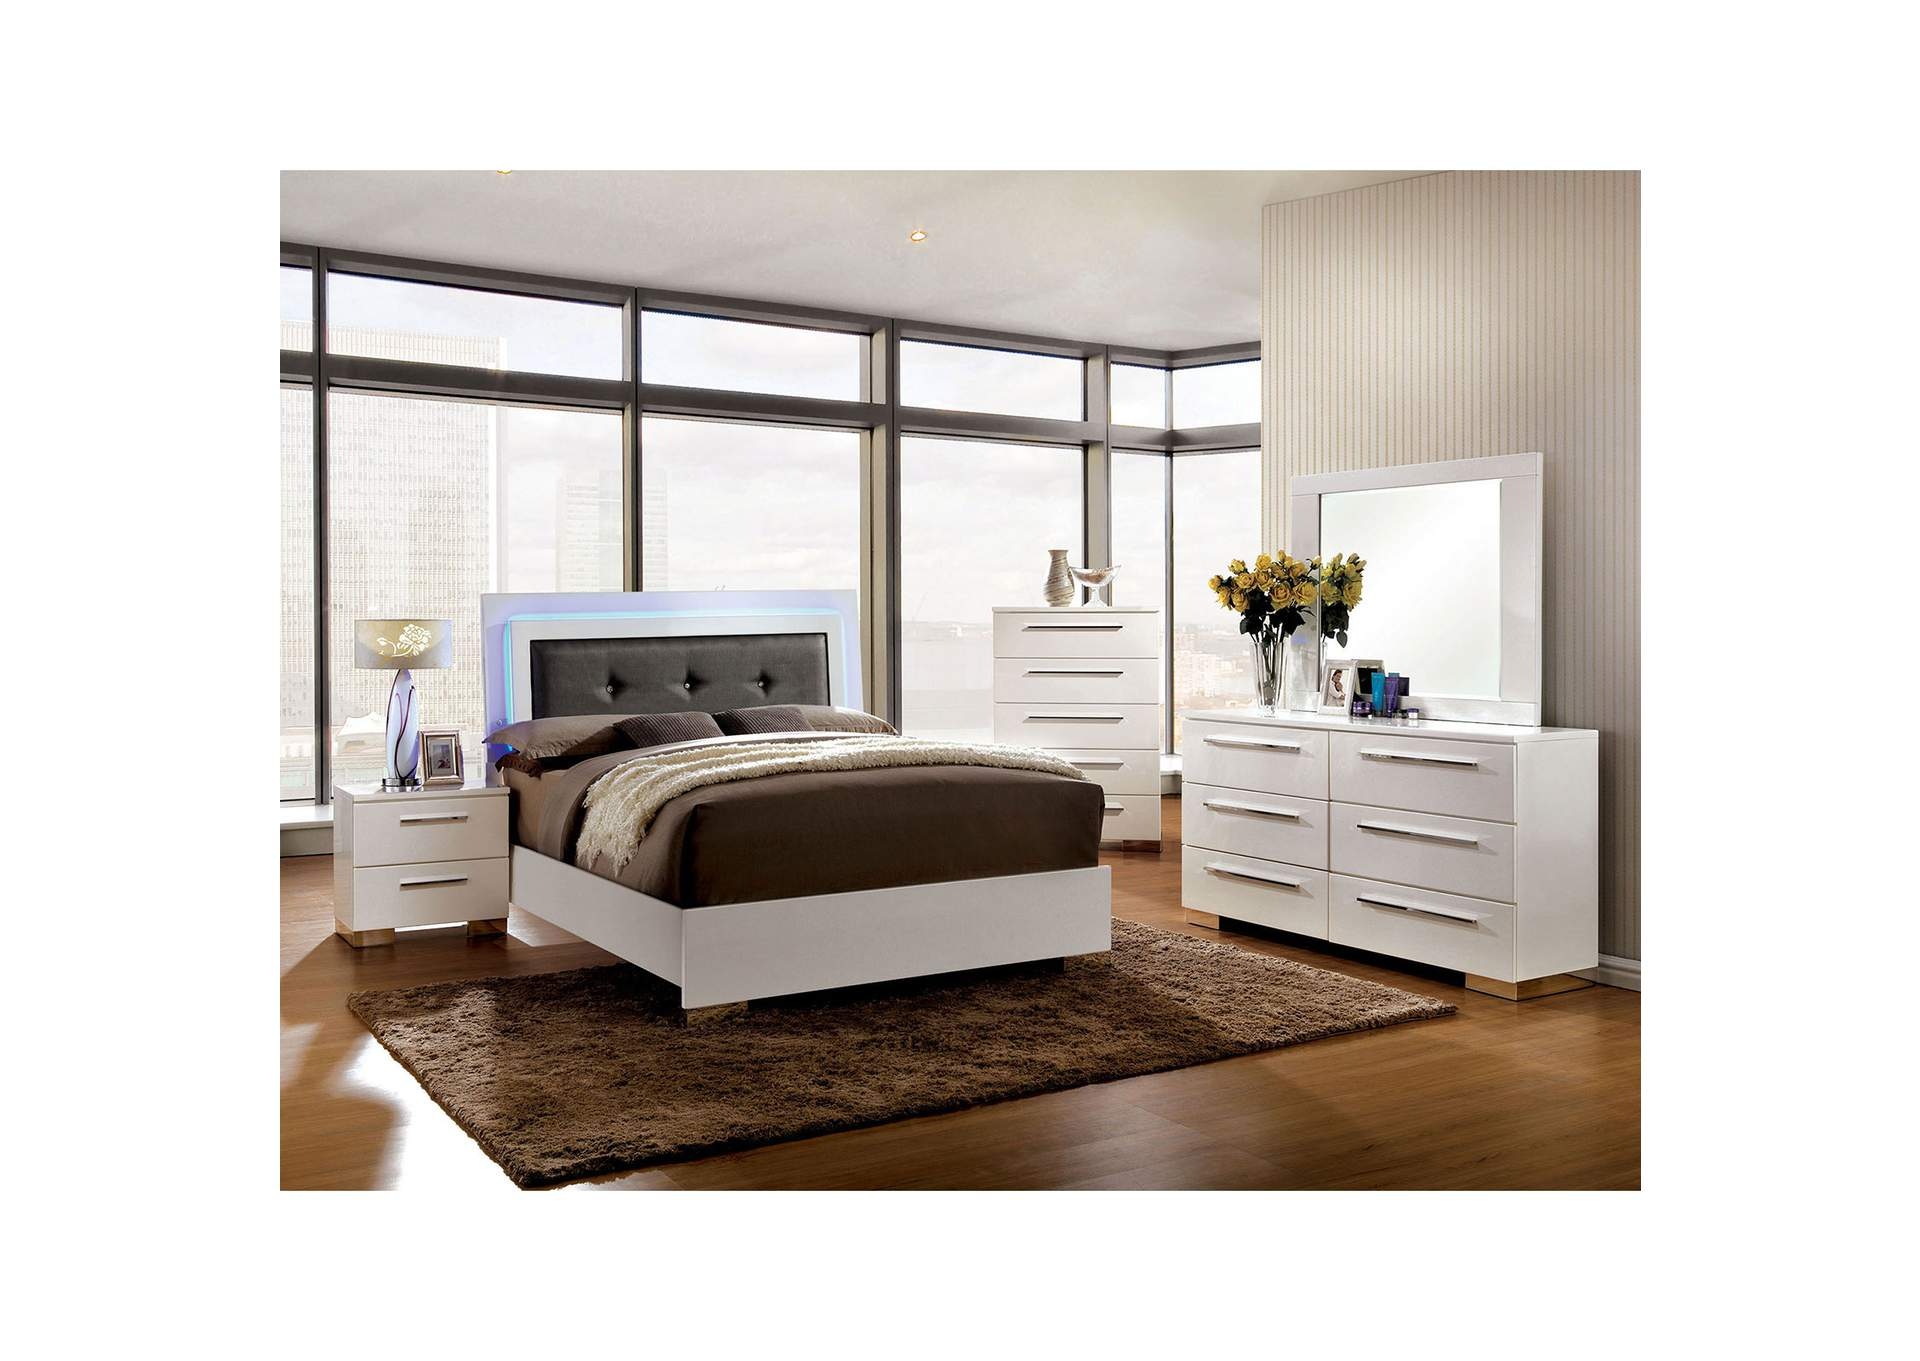 Palace Furniture Clementine White Lacquer Eastern King Platform Bed ...